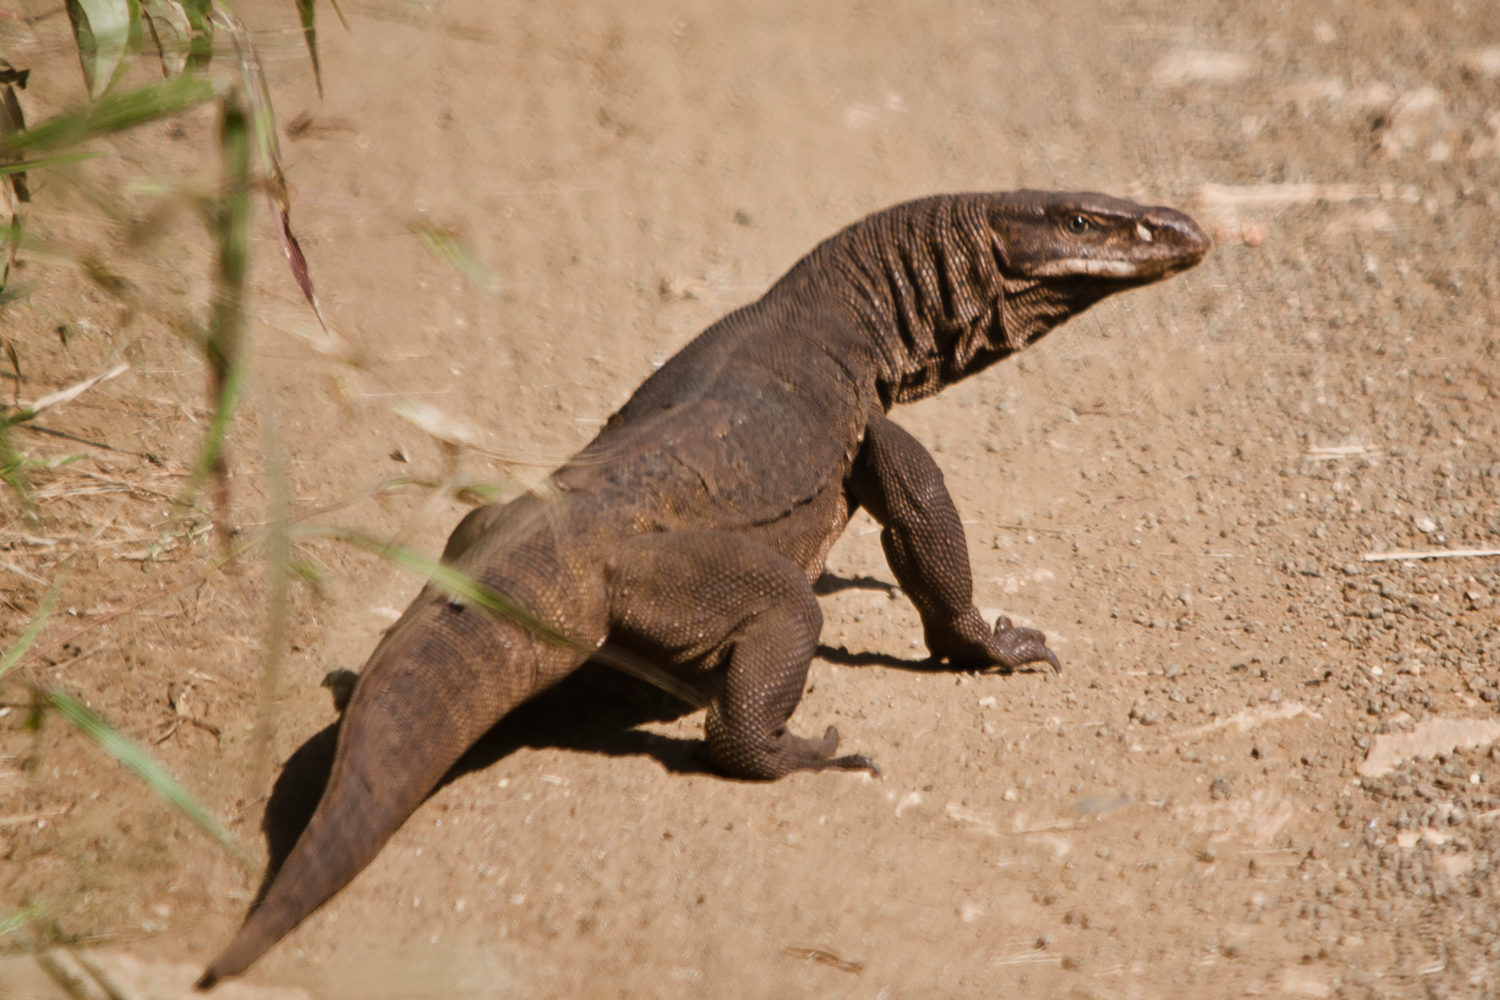 Common Indian Monitor Lizard